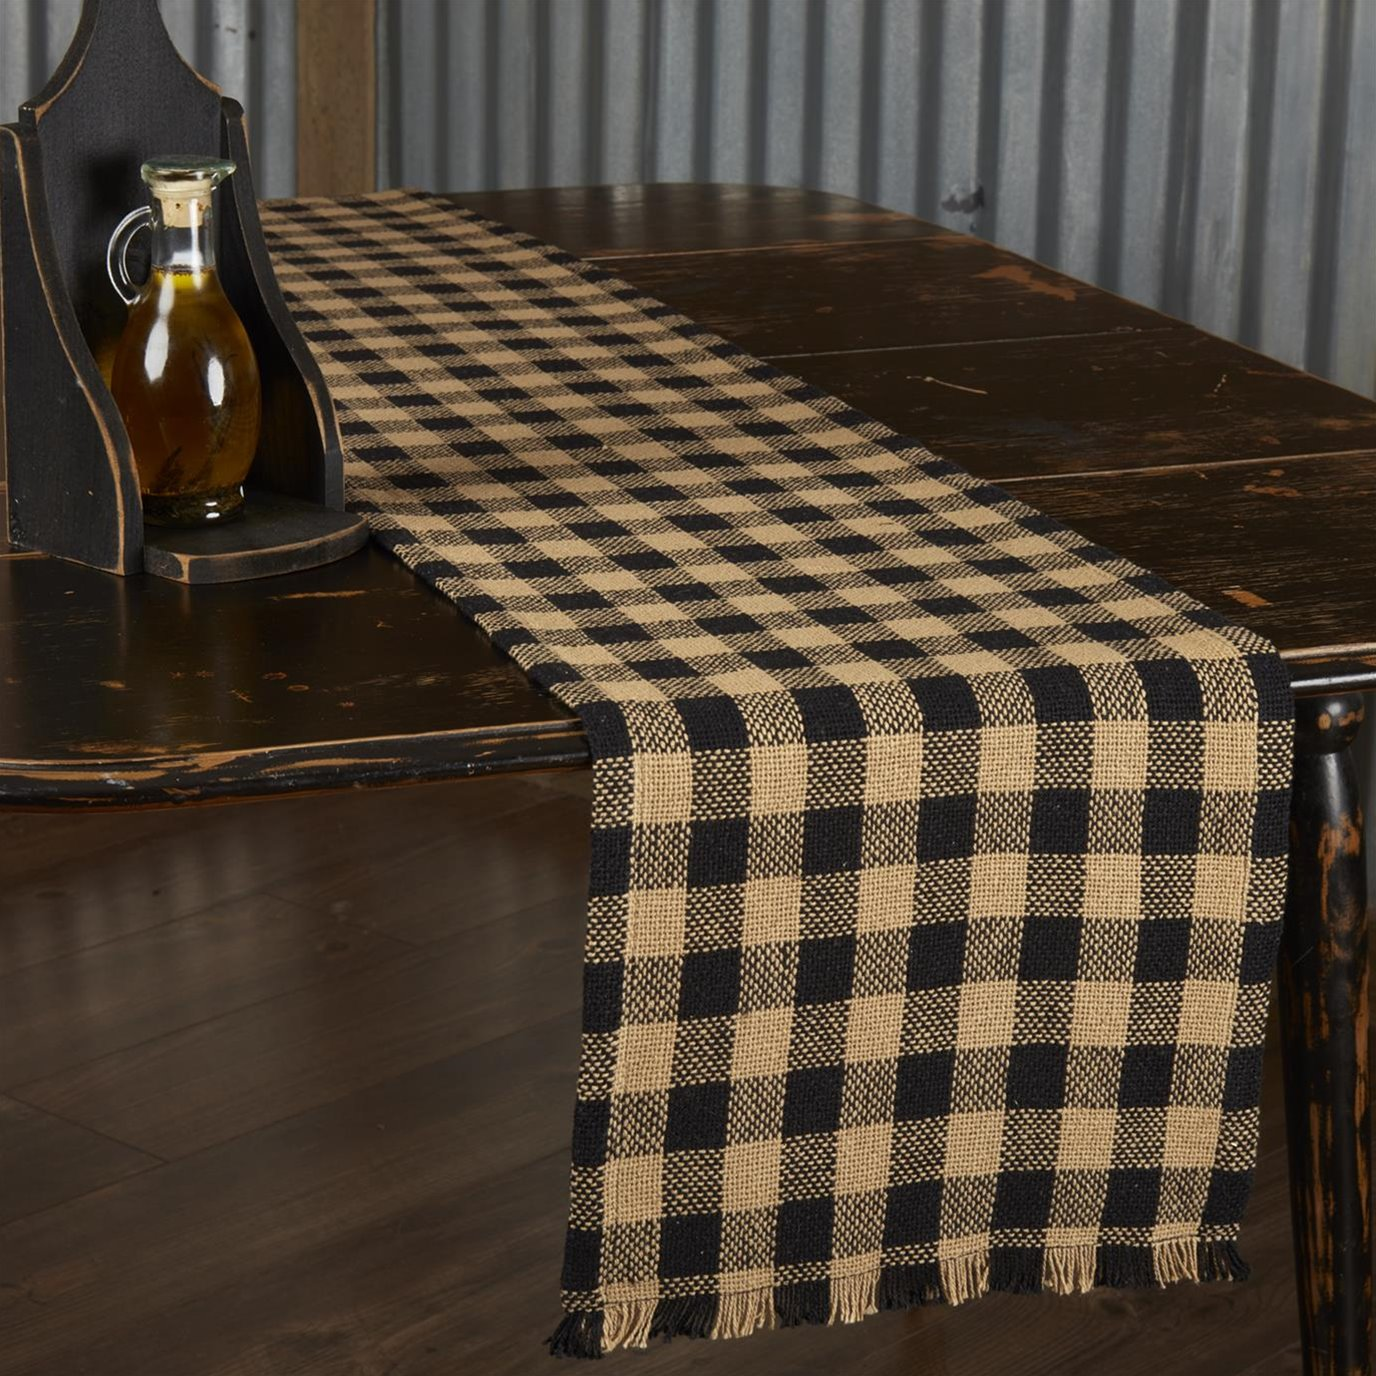 Burlap Black Check Runner Fringed 13x72